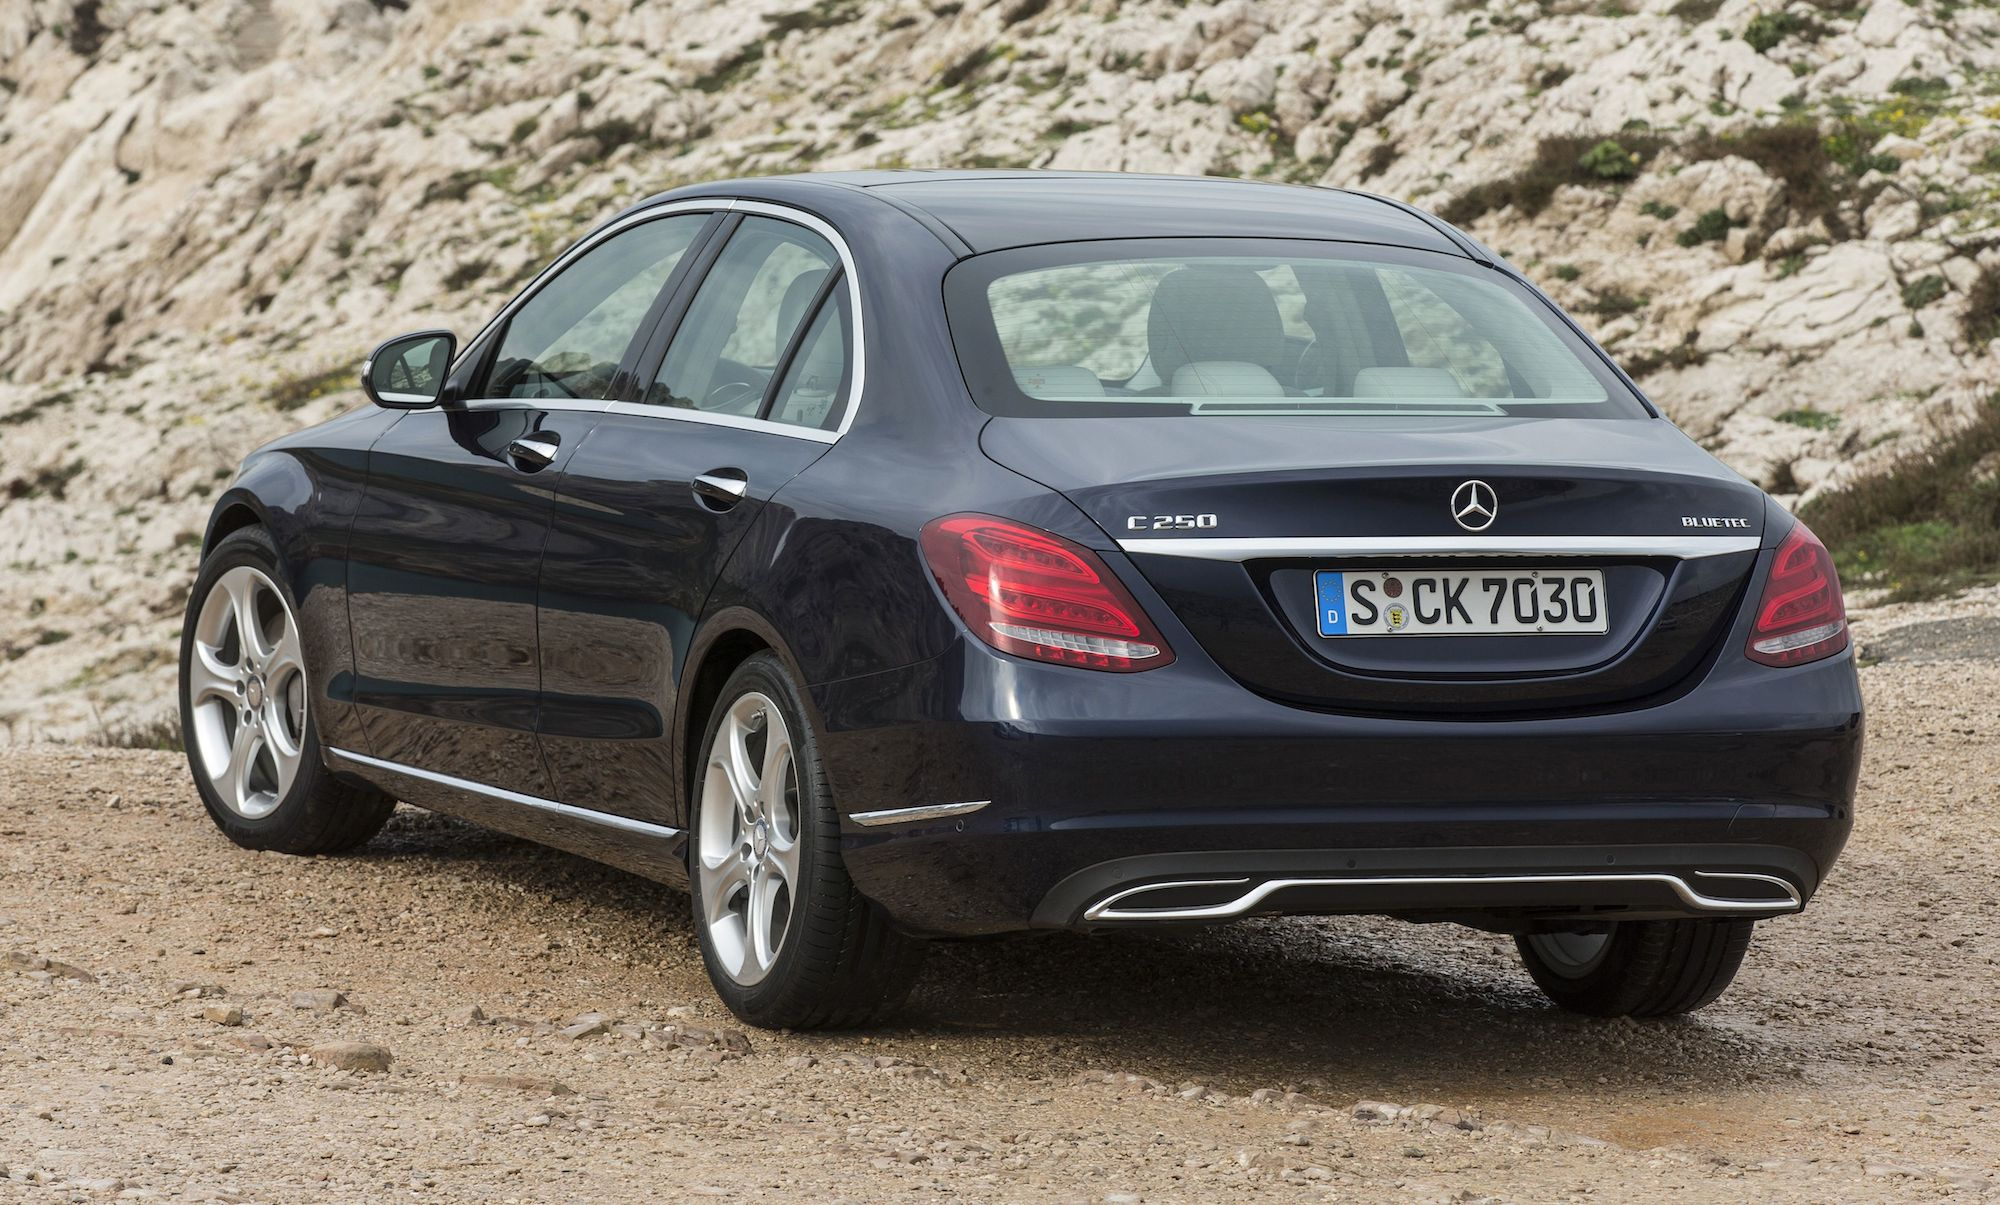 Mercedes-Benz C-Class 2014 review - What Car? - YouTube